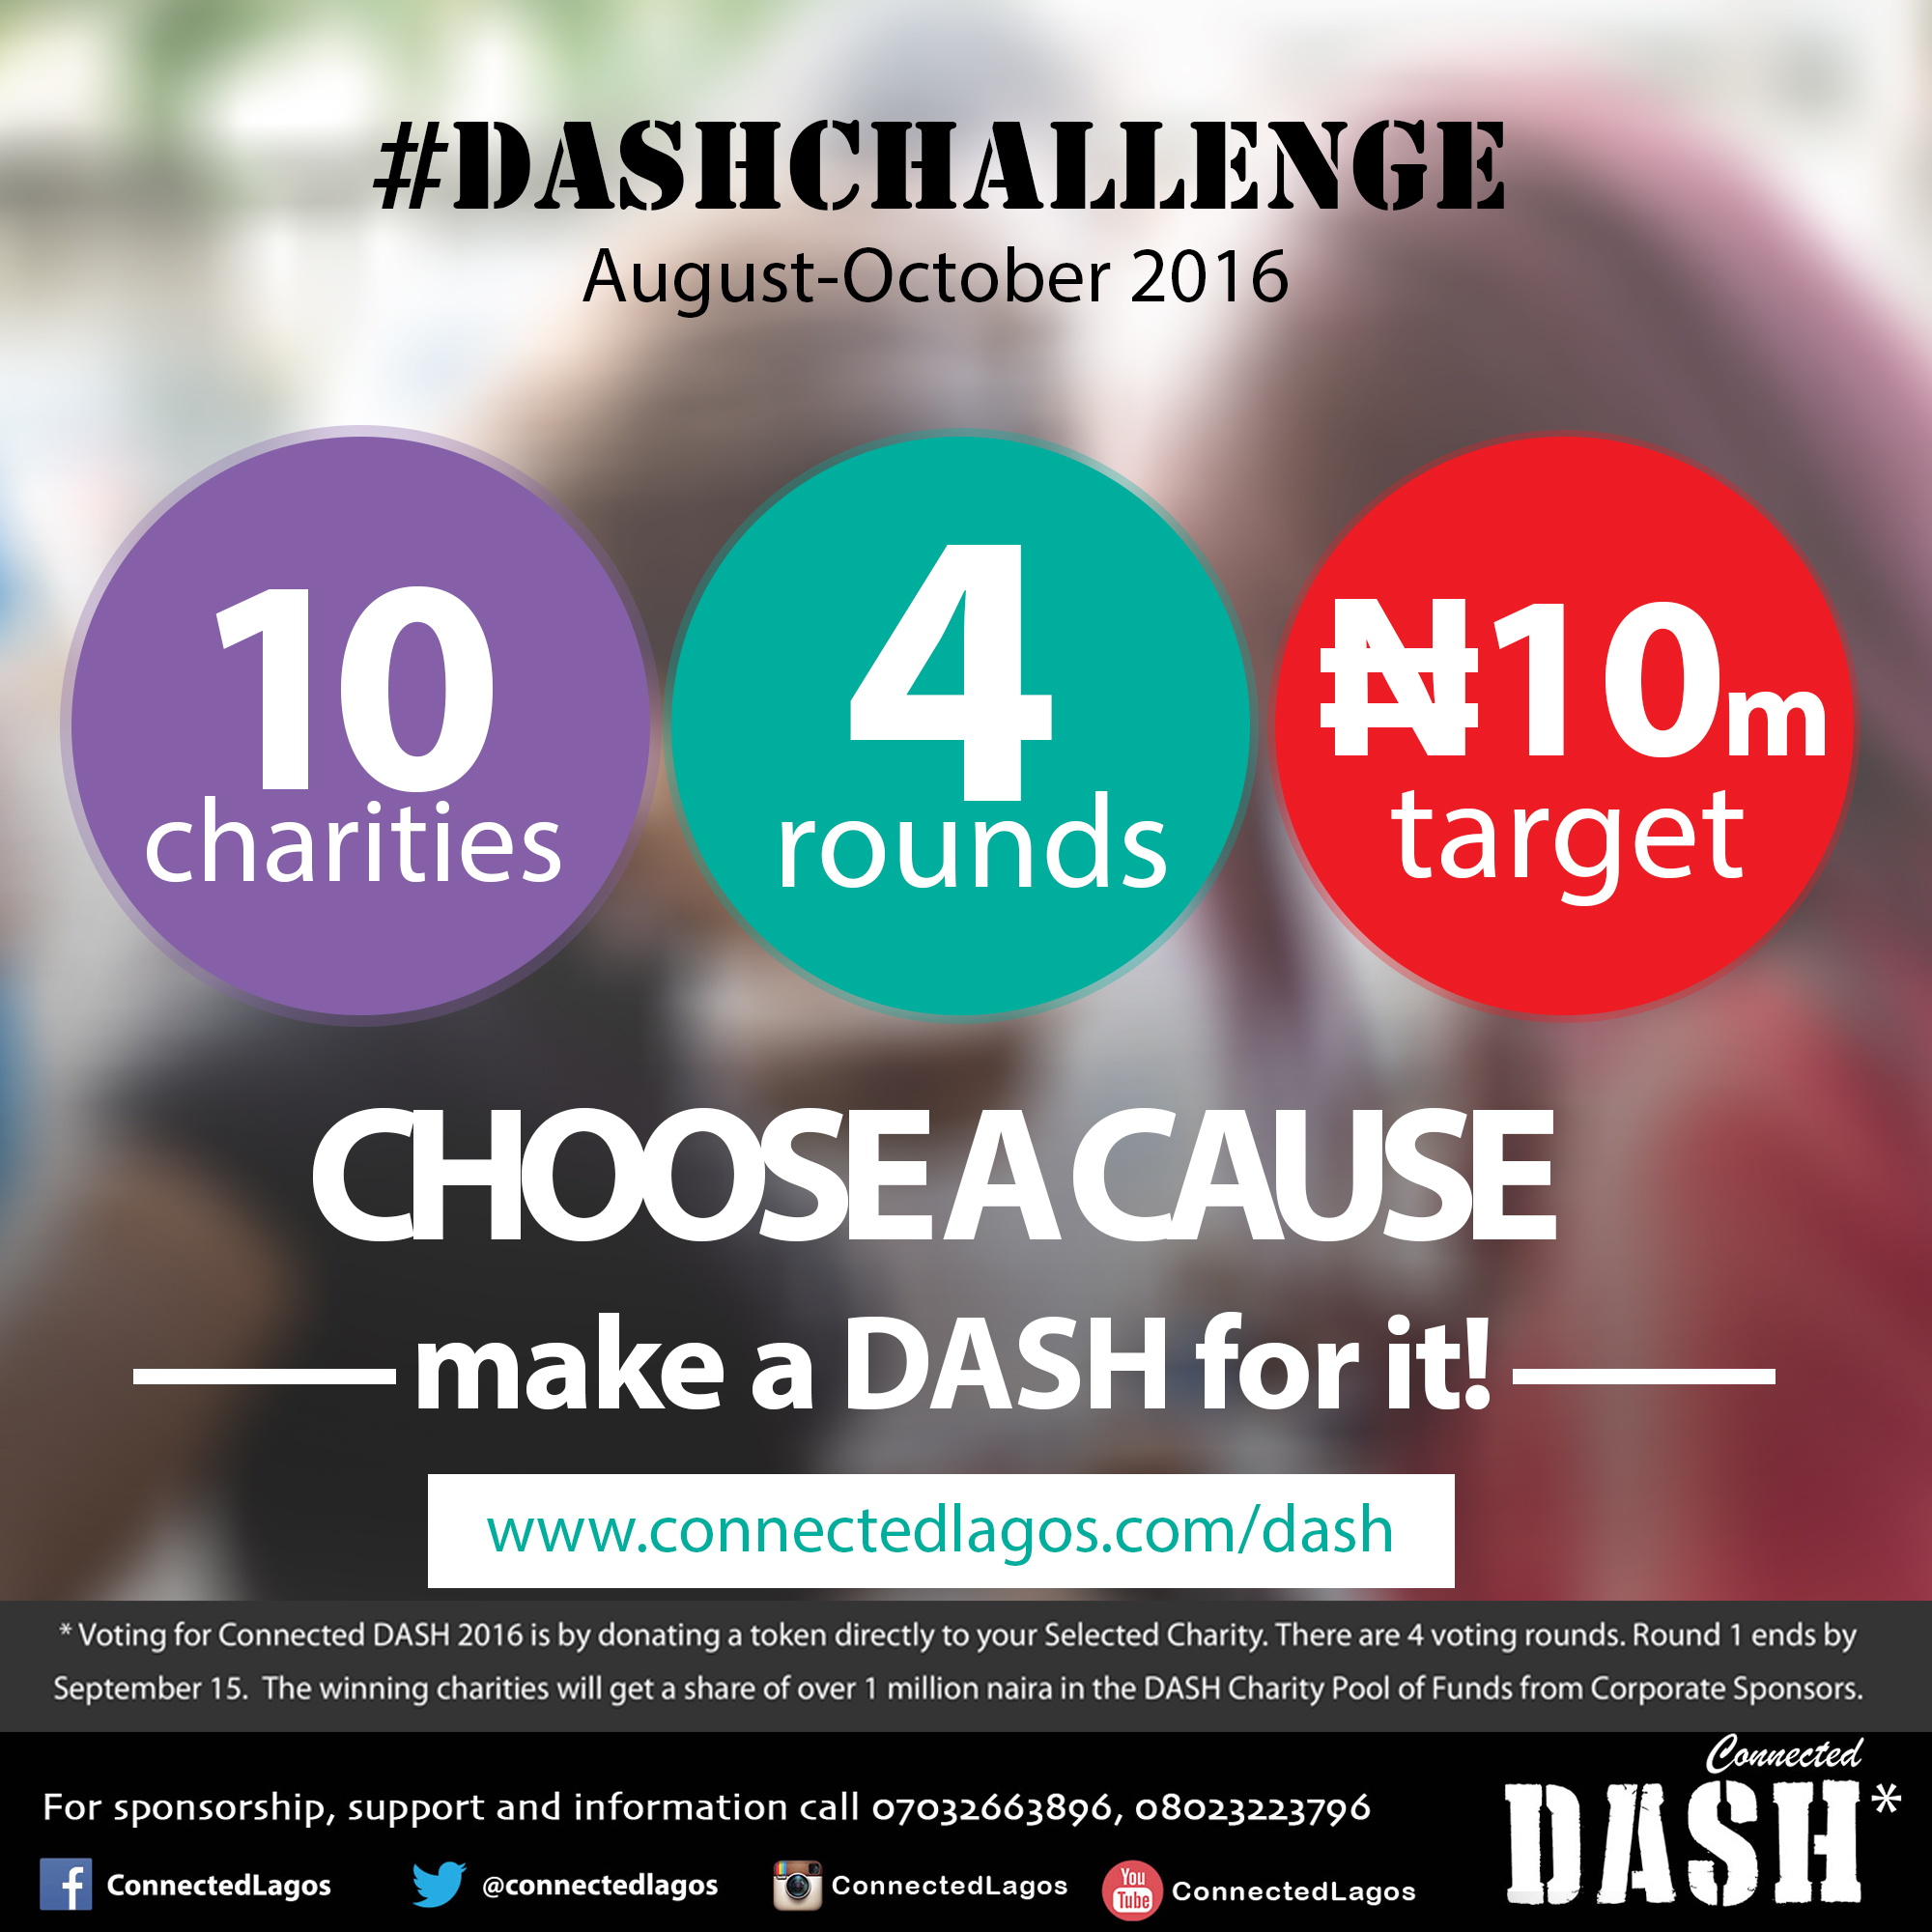 About DASH 2016